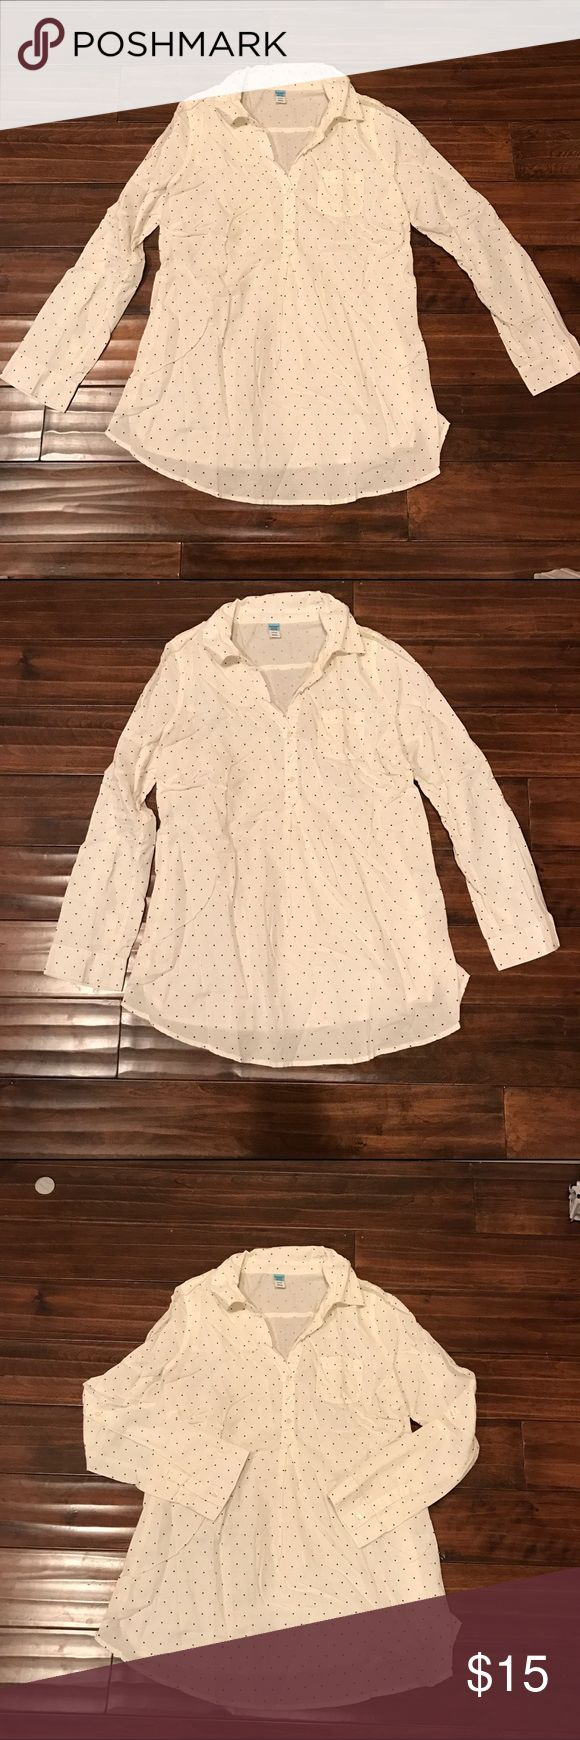 Old Navy Maternity Size M Button up Shirt Old Navy Maternity Size M Button up Shirt Old Navy Tops Button Down Shirts